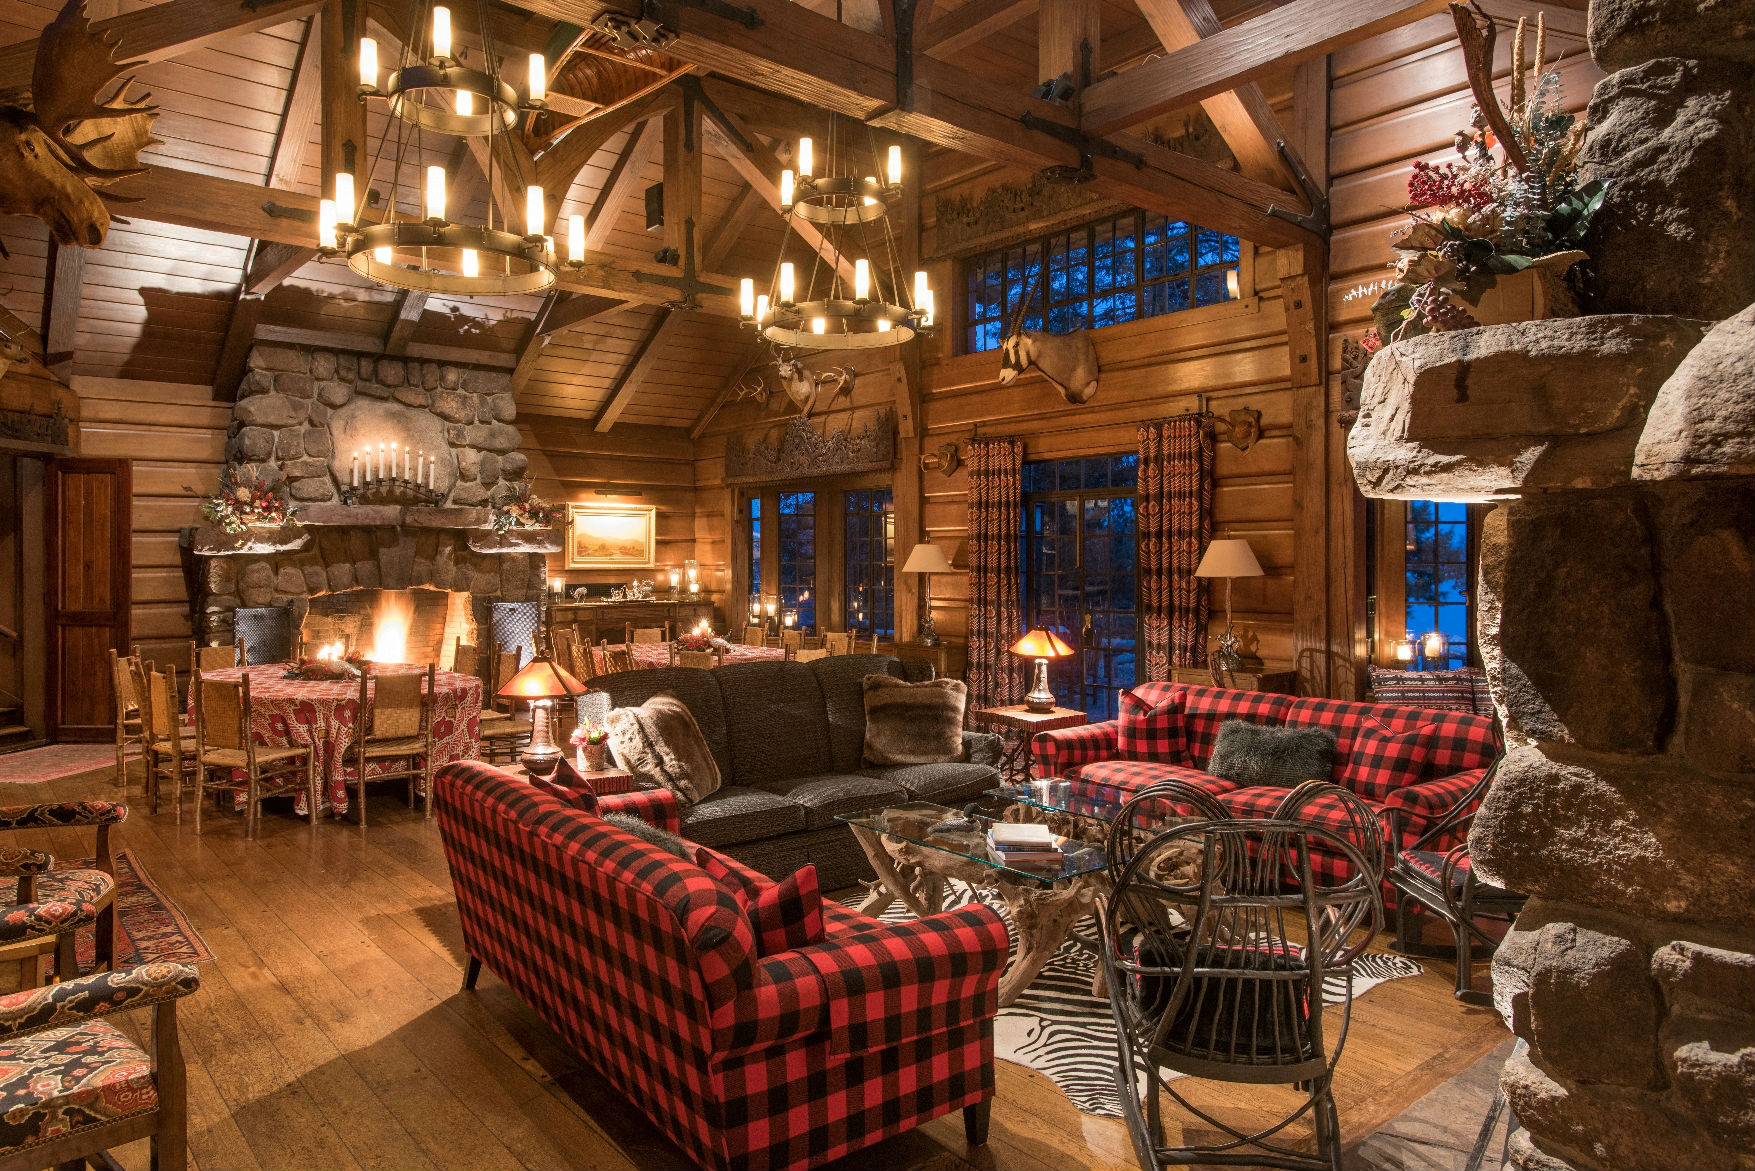 Six Spectacular Adirondack Great Camps You Can Stay In | AFAR on rustic ranch house plans, best rustic house plans, dragonfly house plans, bel air house plans, exterior rustic house plans, beach house plans, rustic stone house plans, rustic house plans with wrap-around porches, rustic colonial house plans, rustic house plans with porches and garages, celtic house plans, rustic open kitchen and great room, pioneer style house plans, houses ranch style house plans, rustic mediterranean house plans, rustic cabin plans, rustic traditional house plans, rustic loft house plans, rustic house house plans, small rustic house plans,